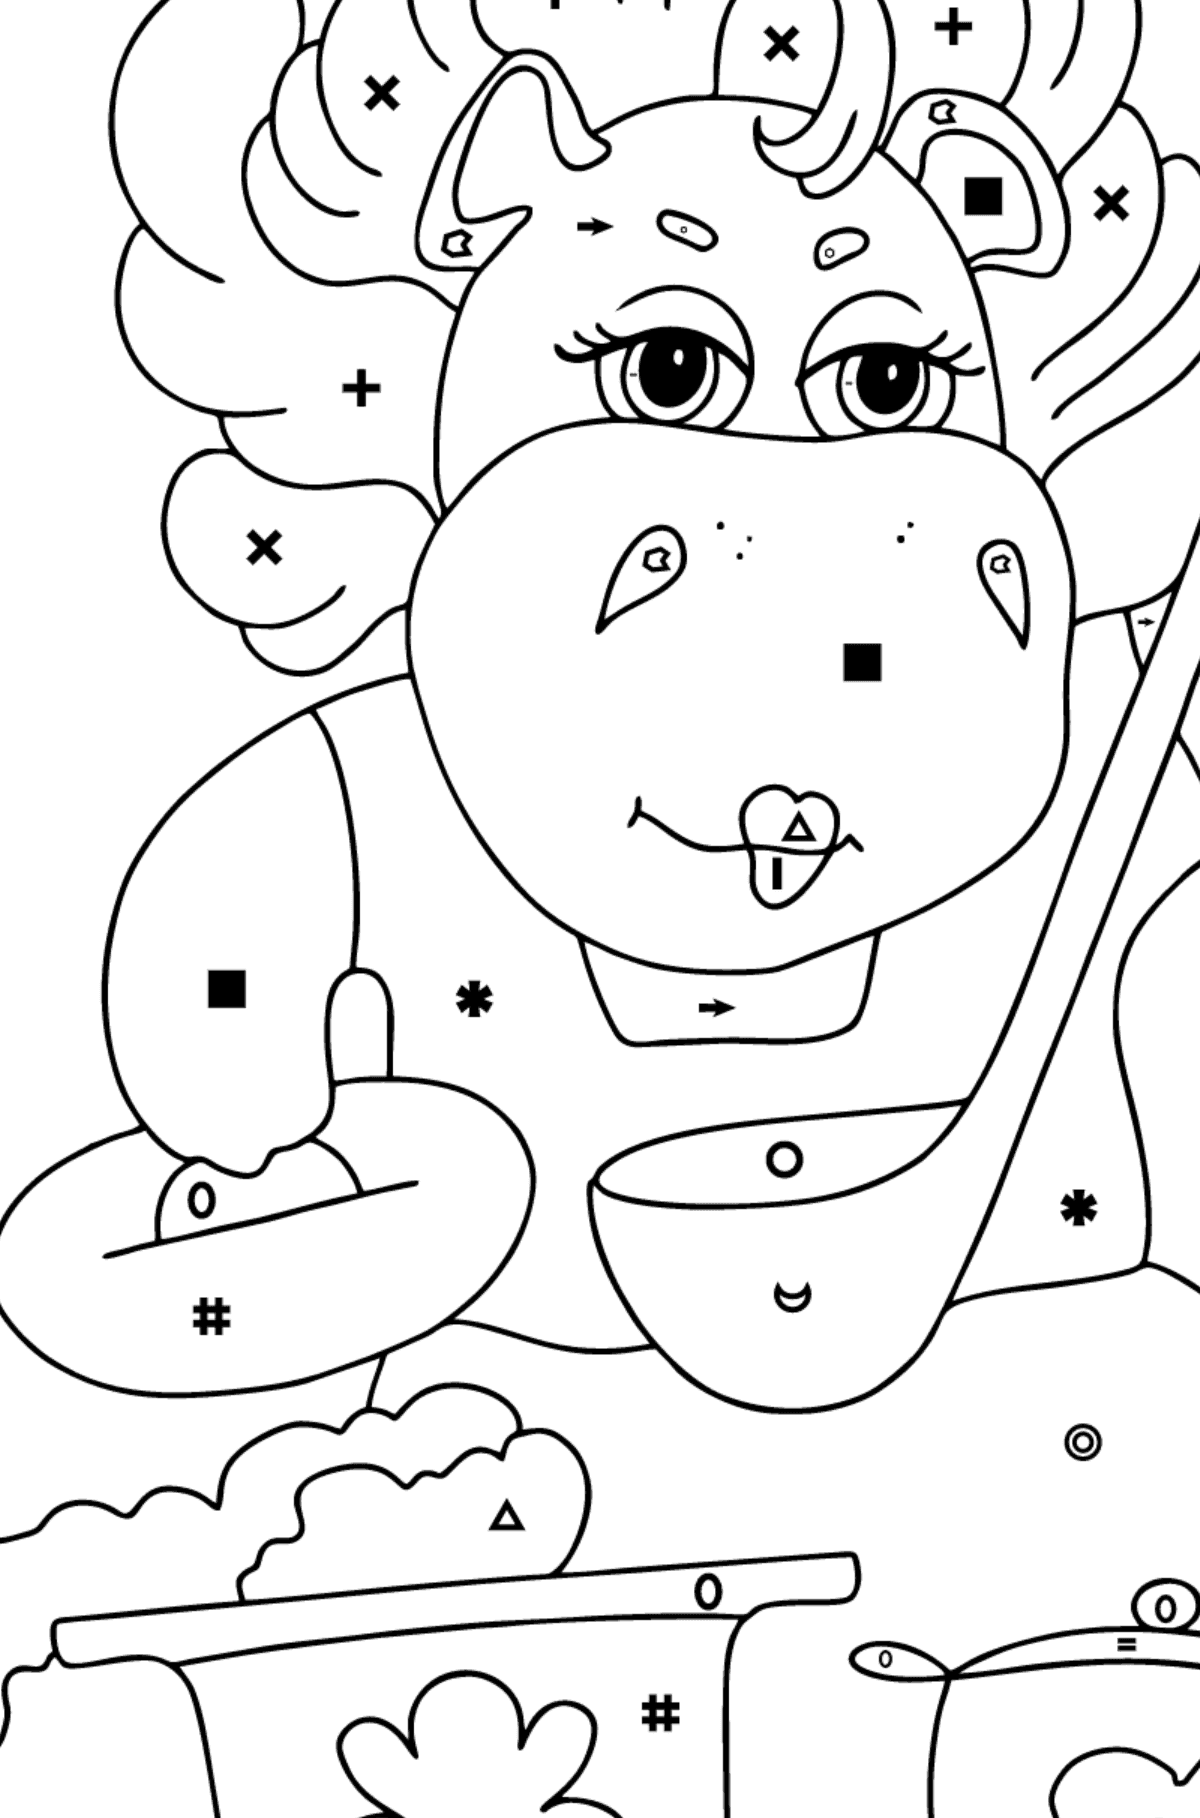 Coloring Page - A Hippo is Cooking a Tasty Lunch for Kids  - Color by Symbols and Geometric Shapes